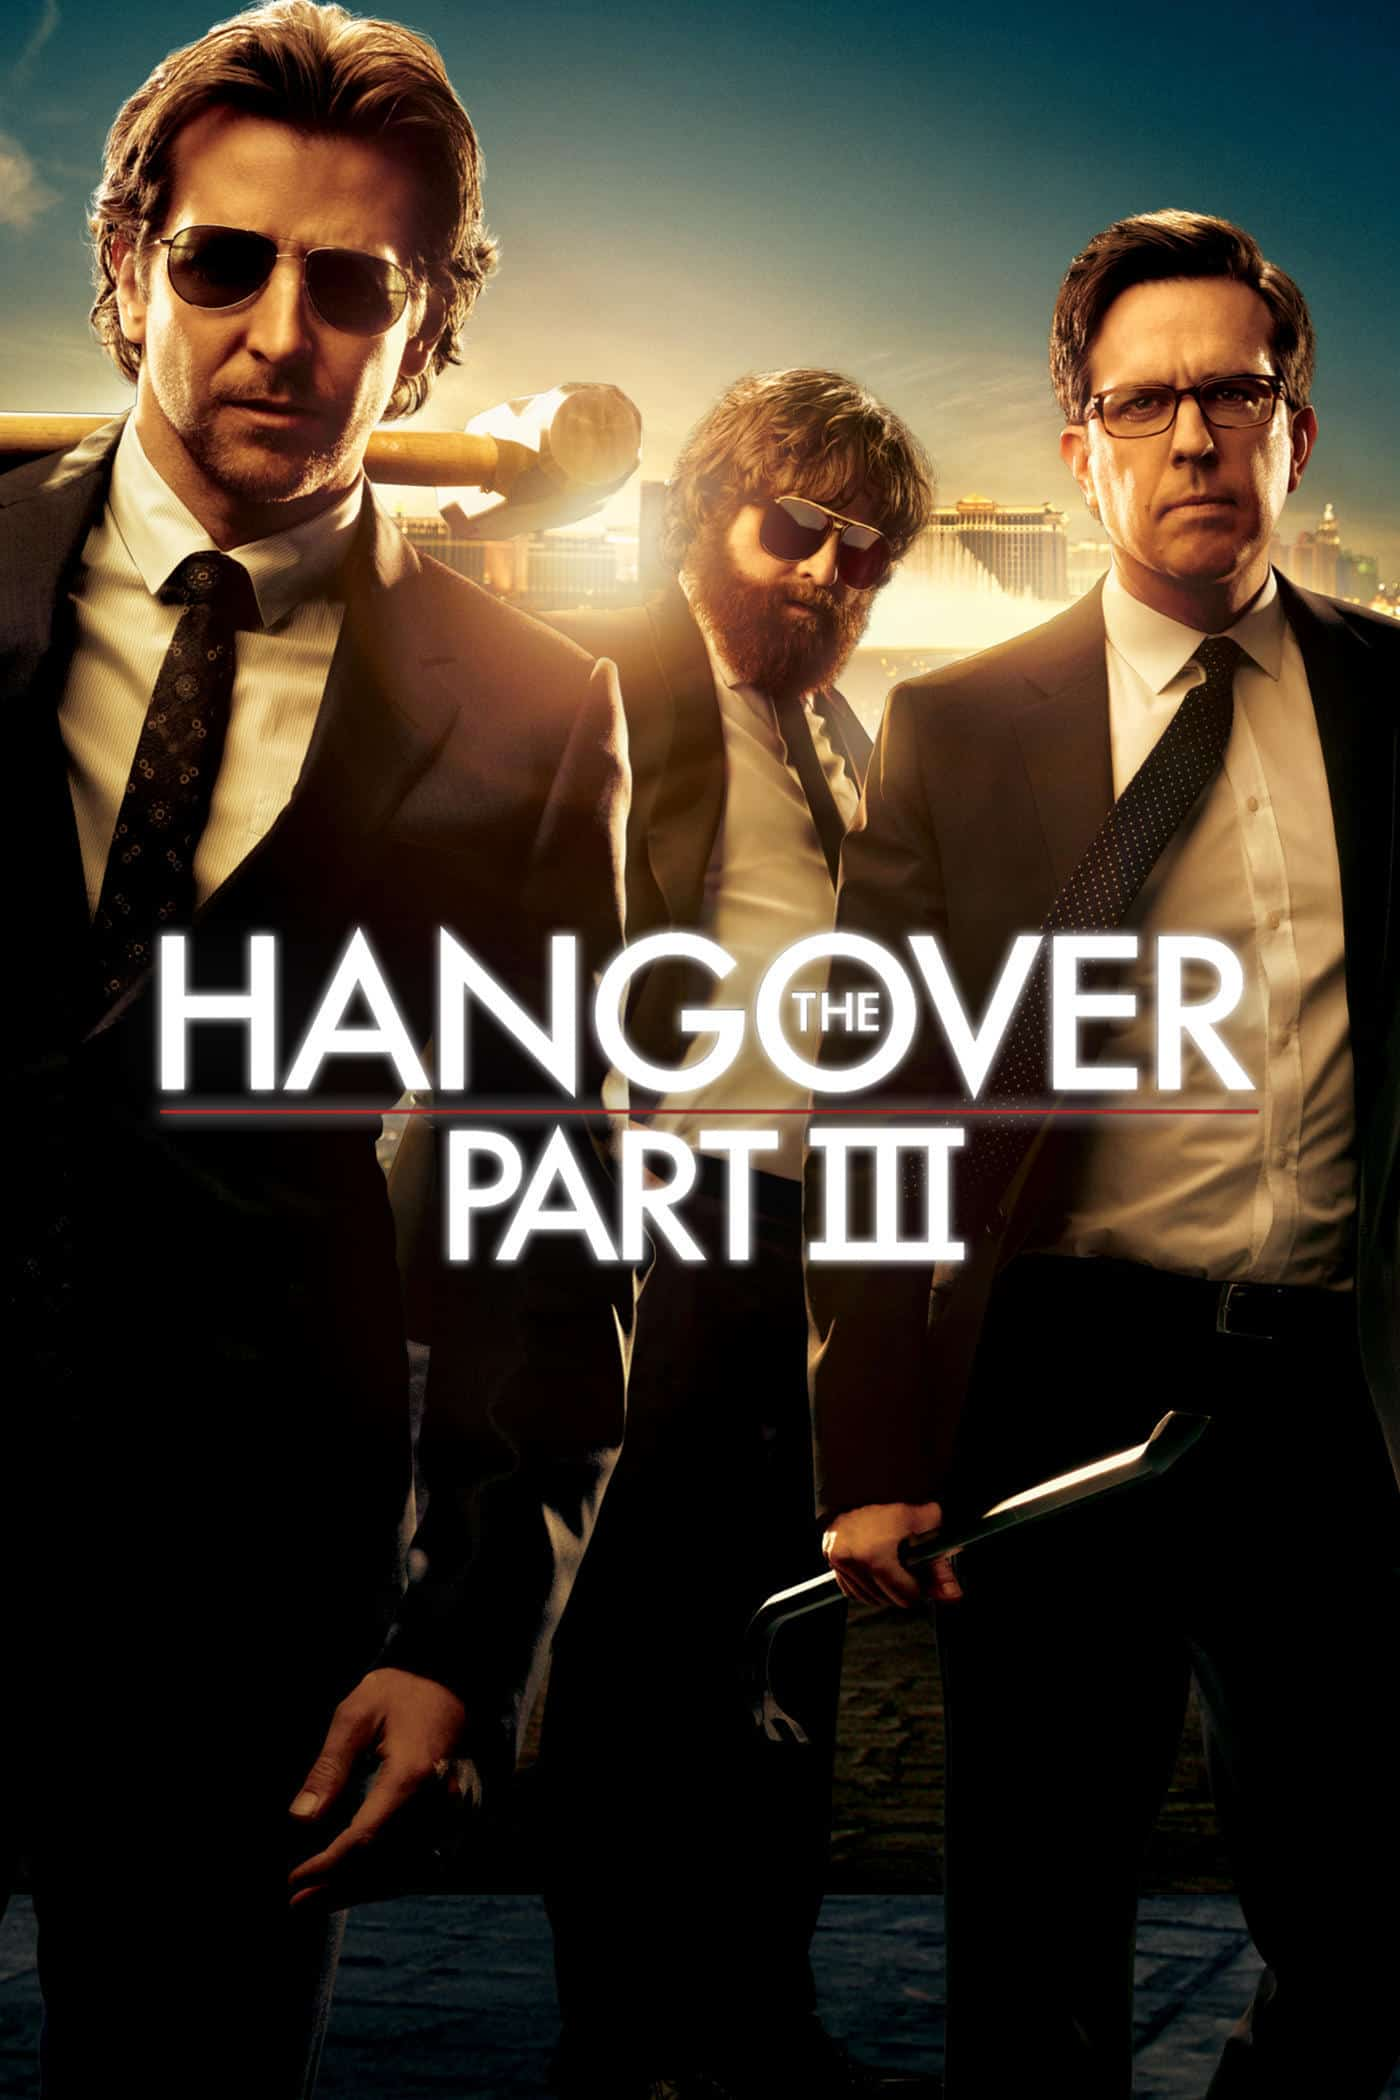 The Hangover Part III, 2013